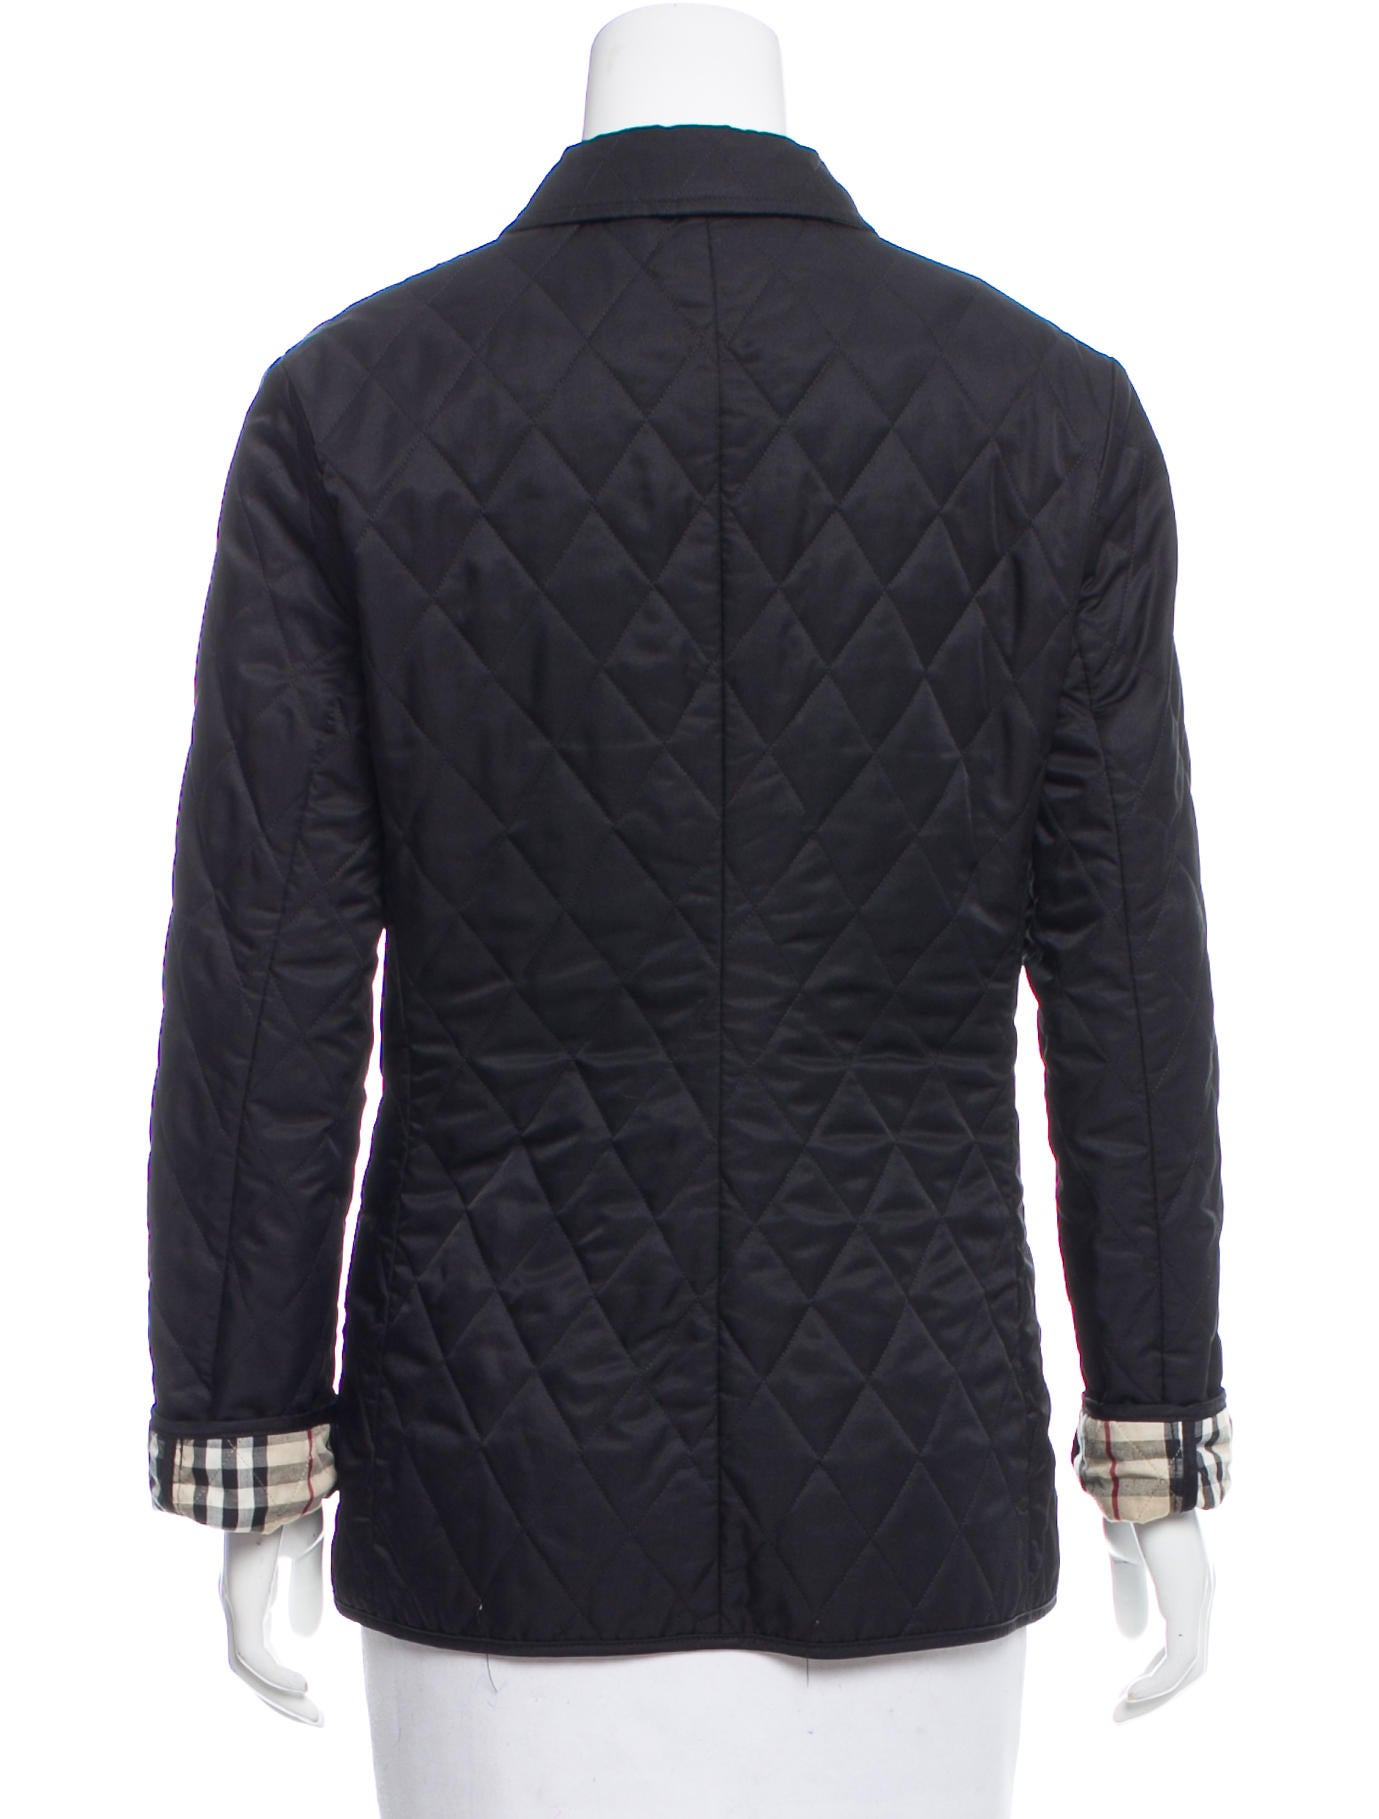 Burberry Lightweight Quilted Jacket Clothing Bur74414